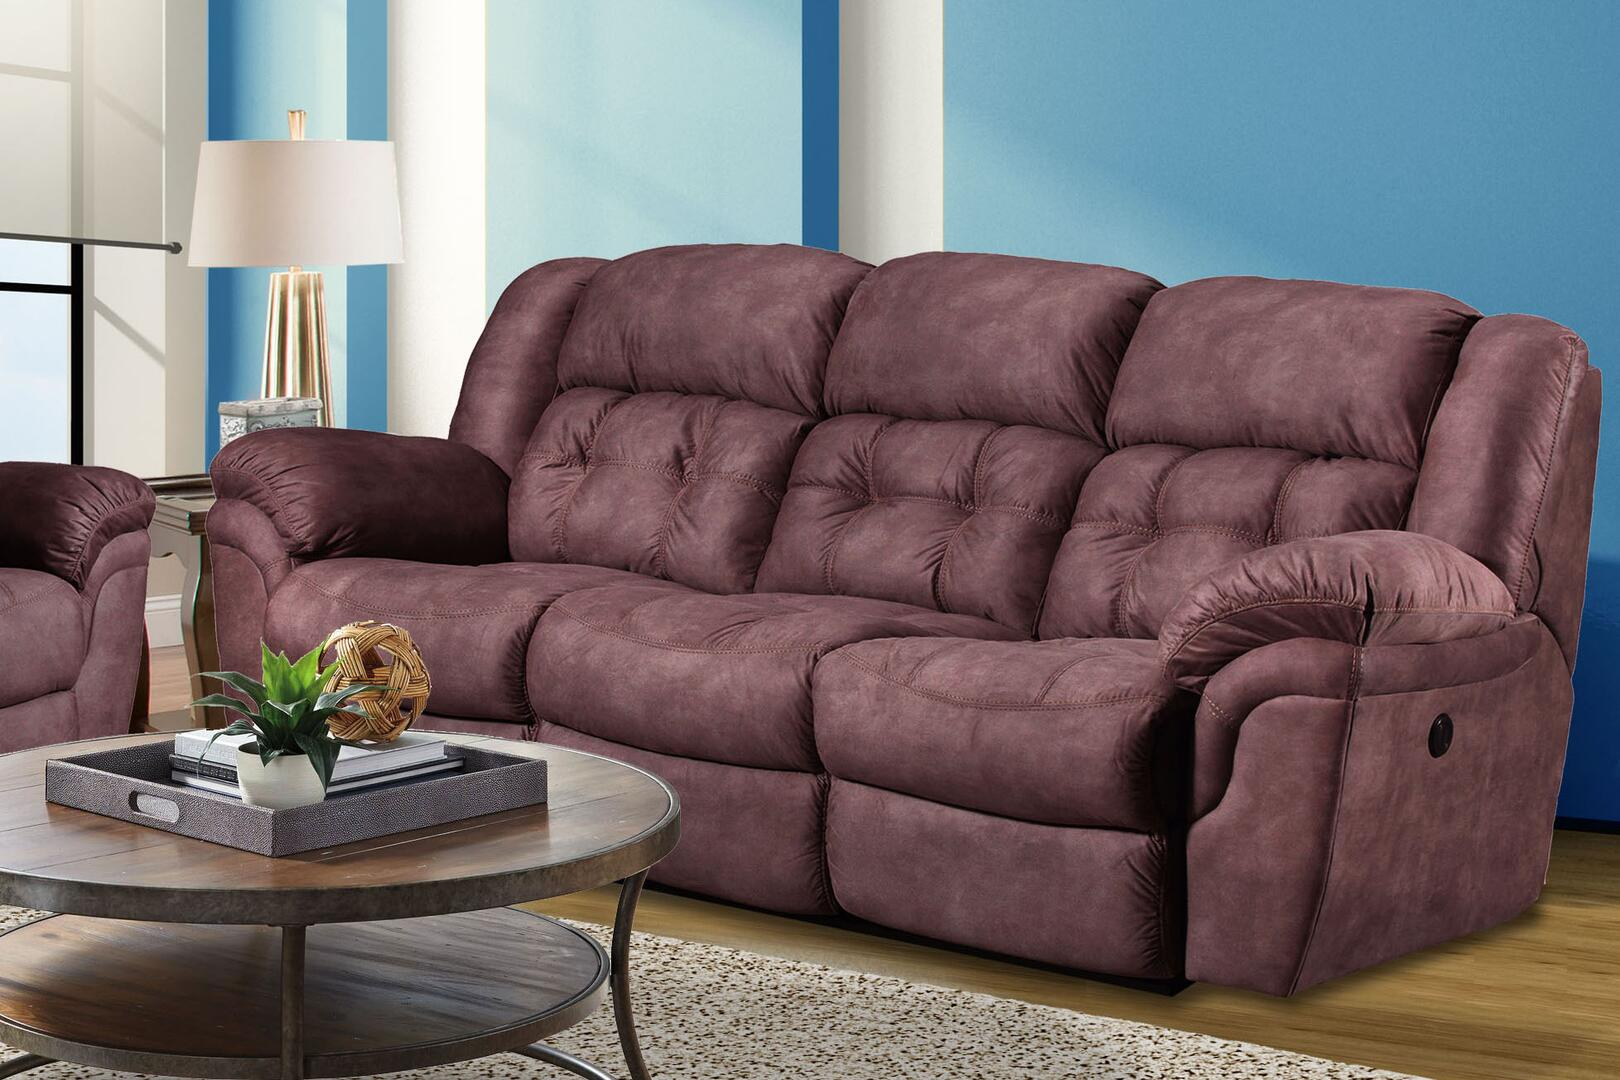 572 S Wc Beverlie Reclining Sofa